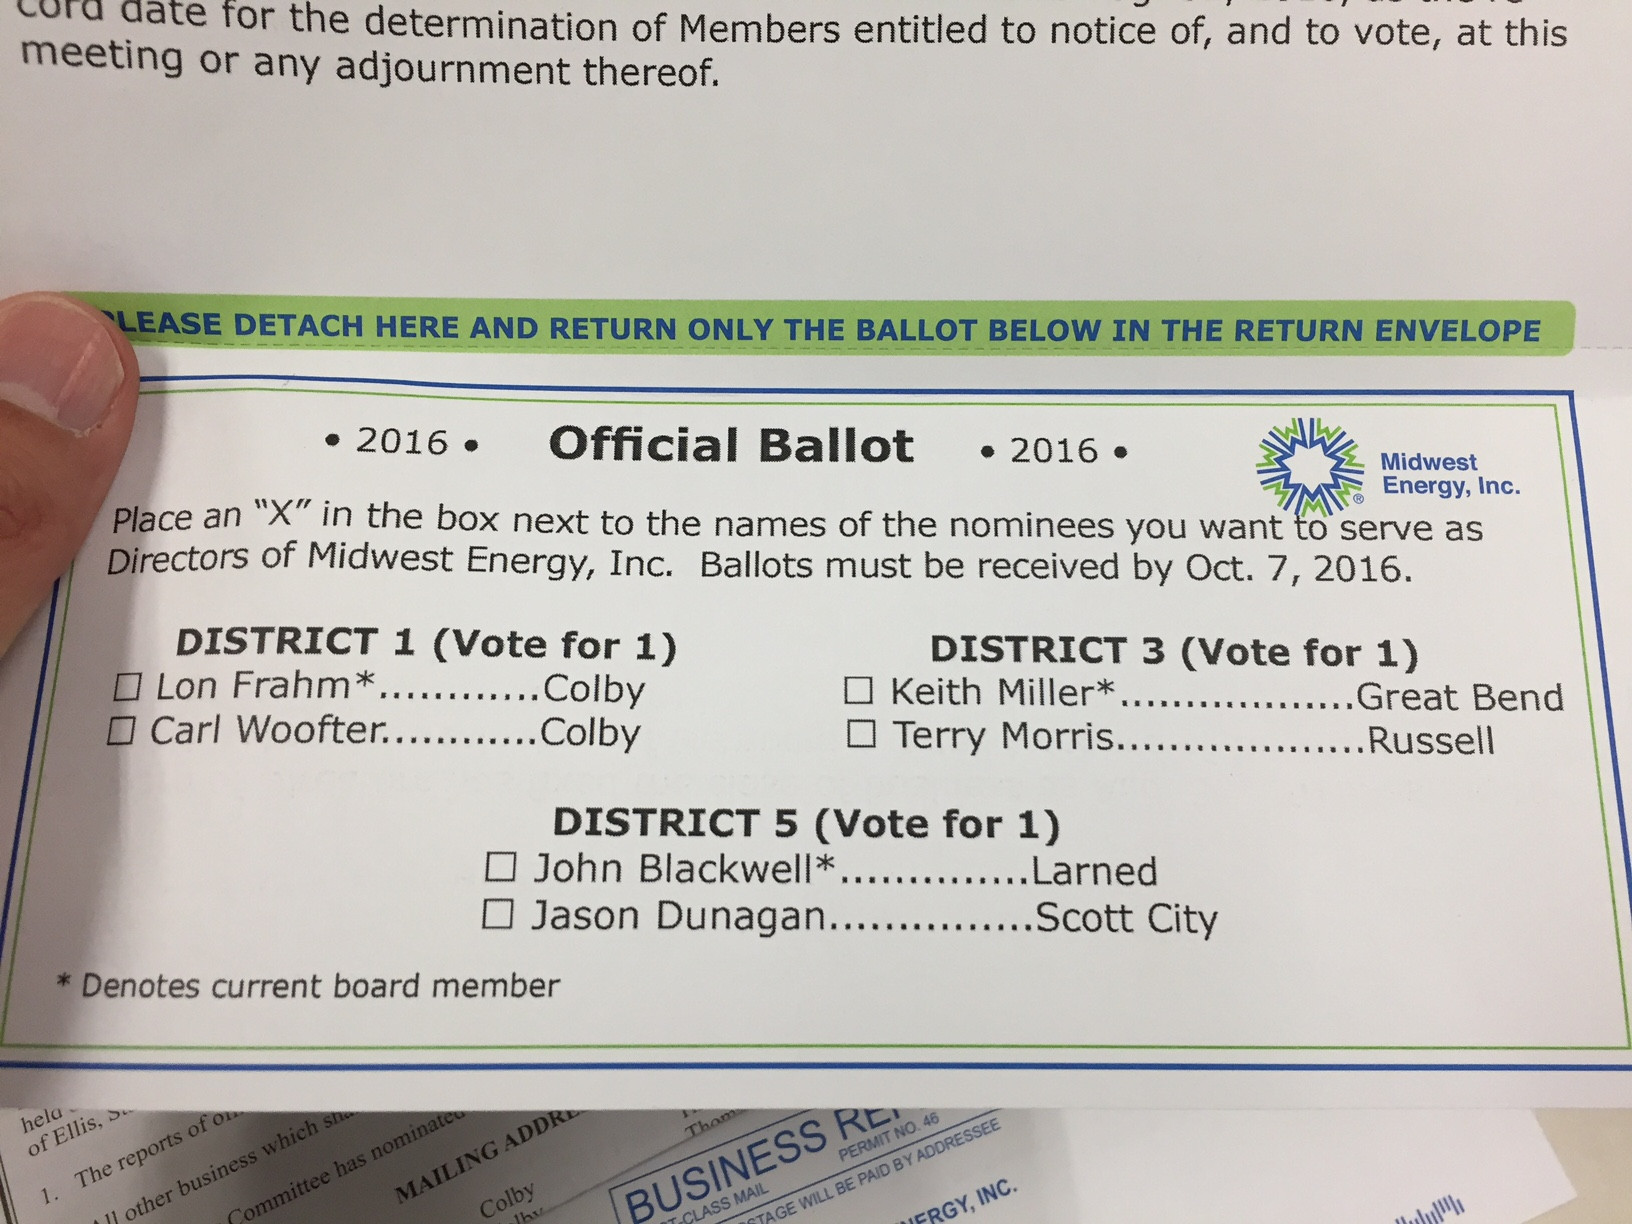 A photo of a hand holding the 2016 Board of Directors ballot.